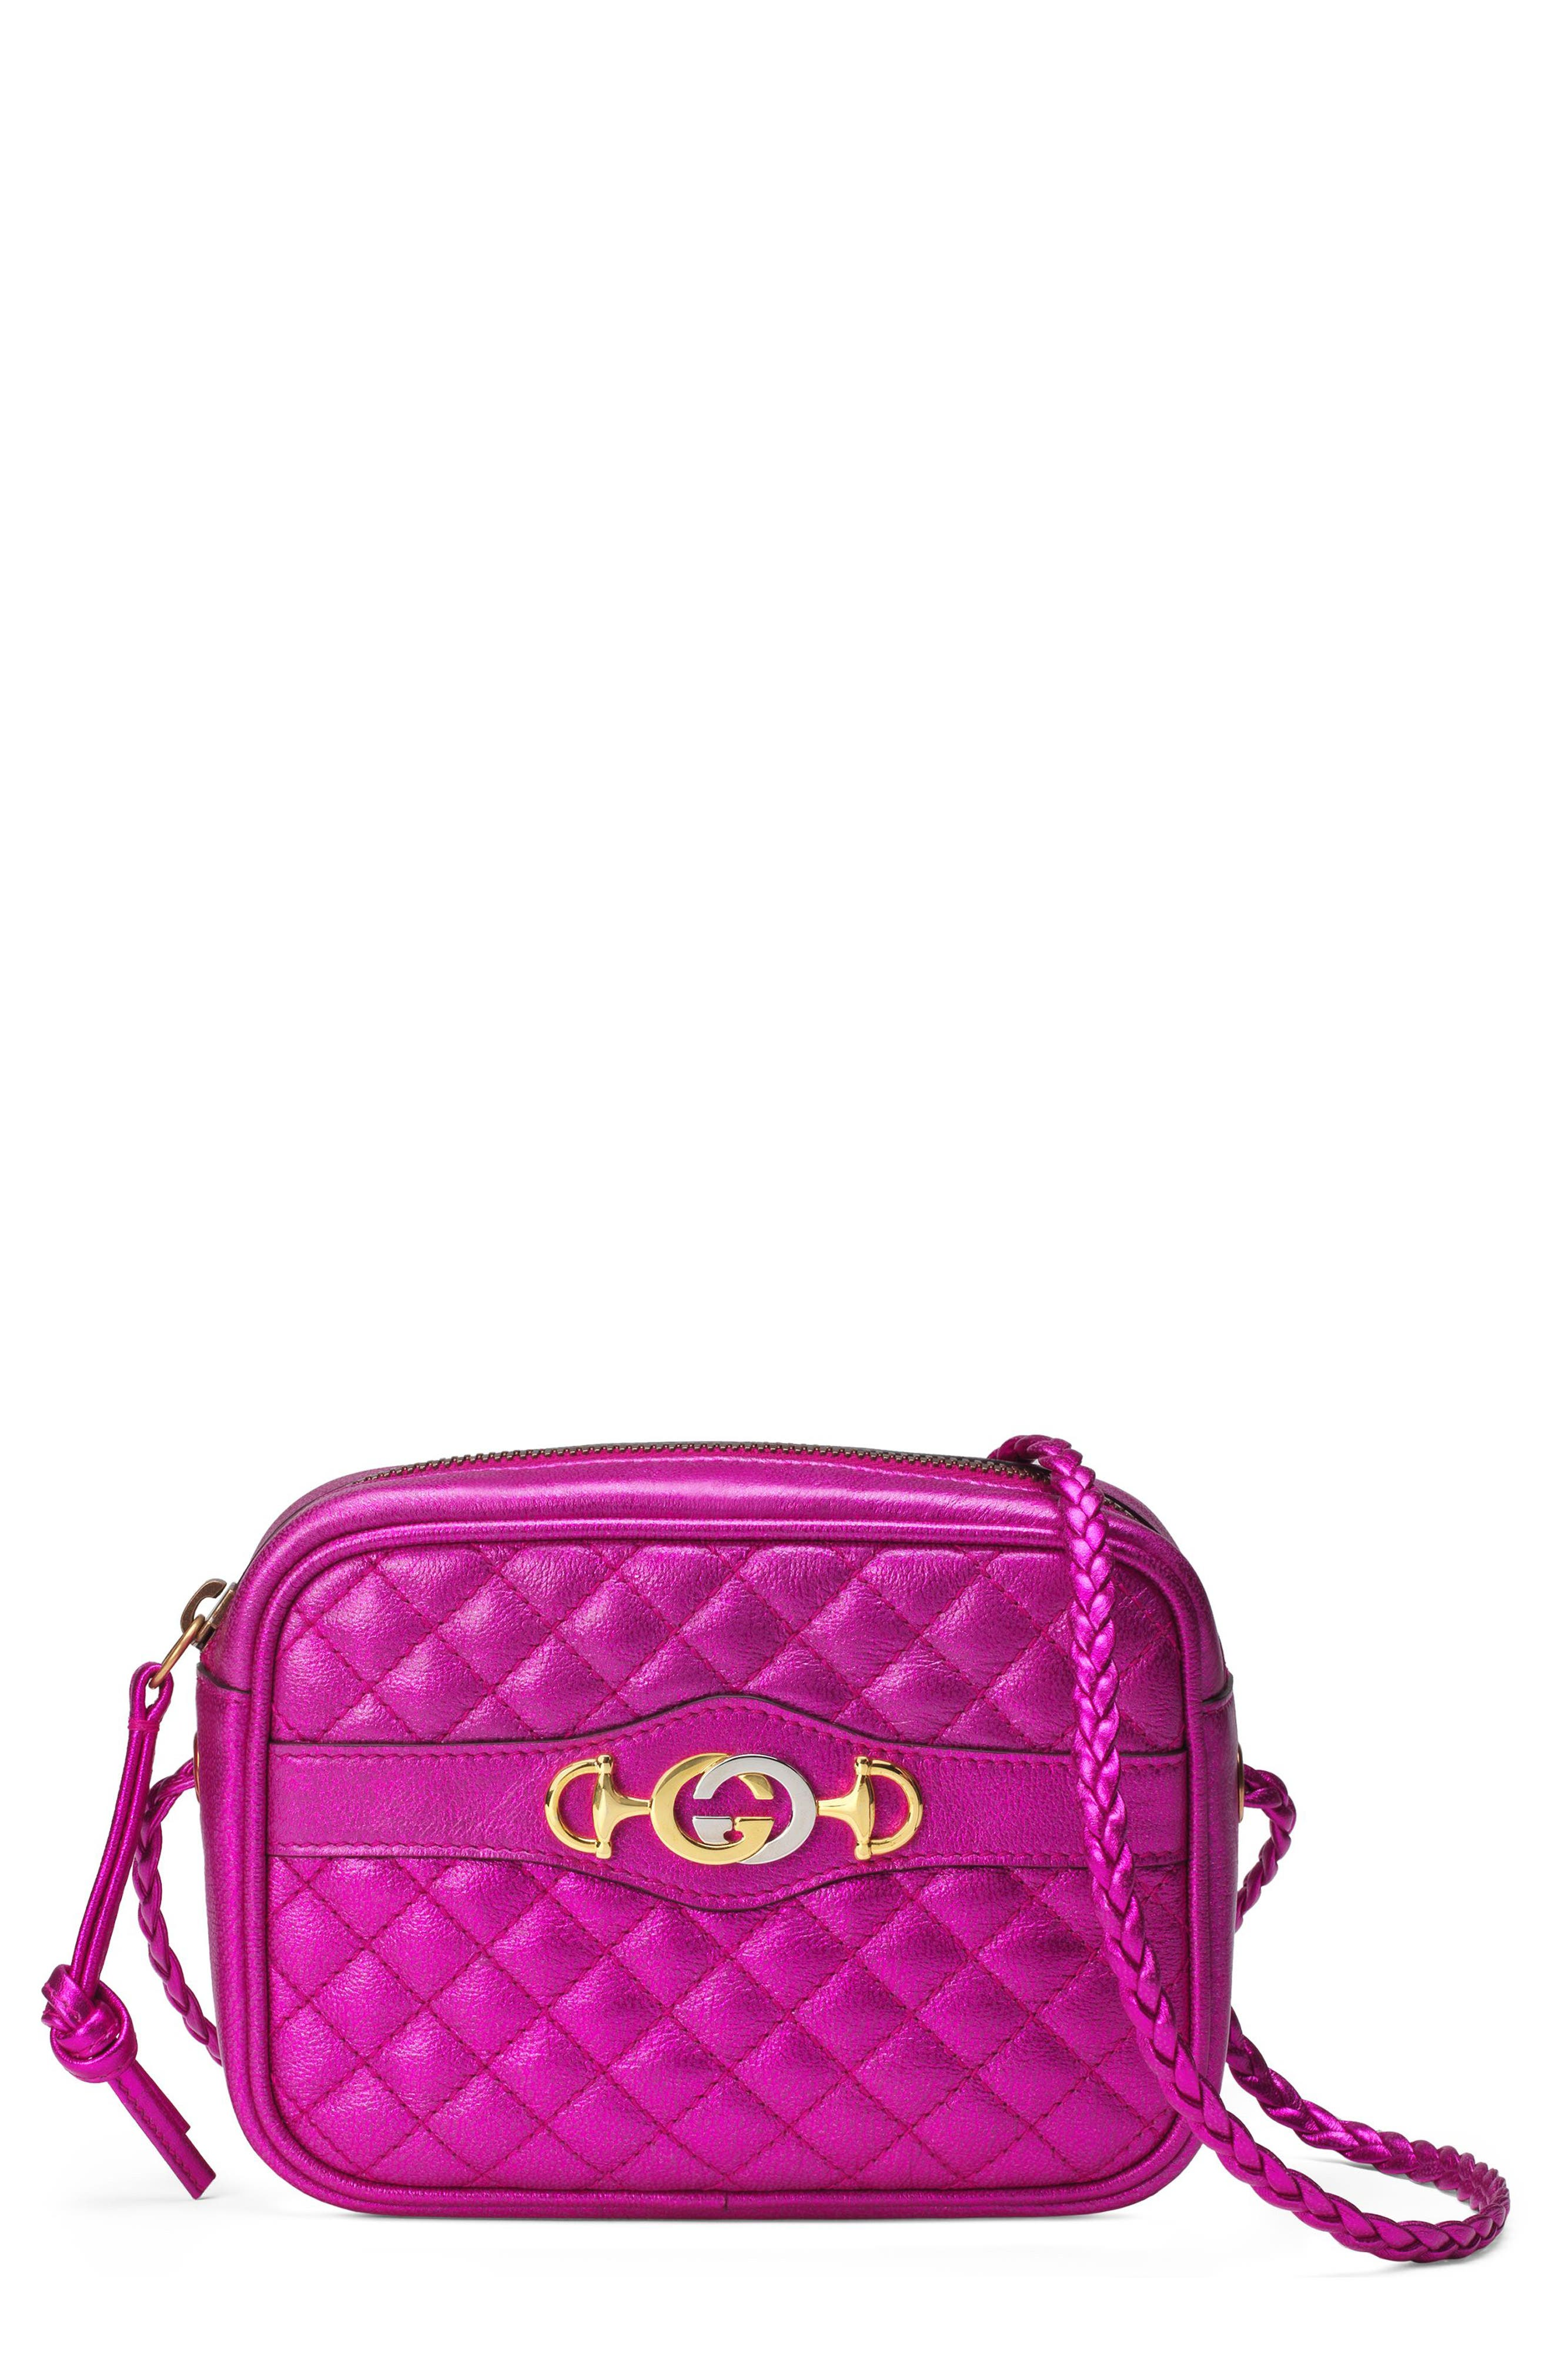 Quilted Metallic Leather Camera Bag,                         Main,                         color, FUXIA